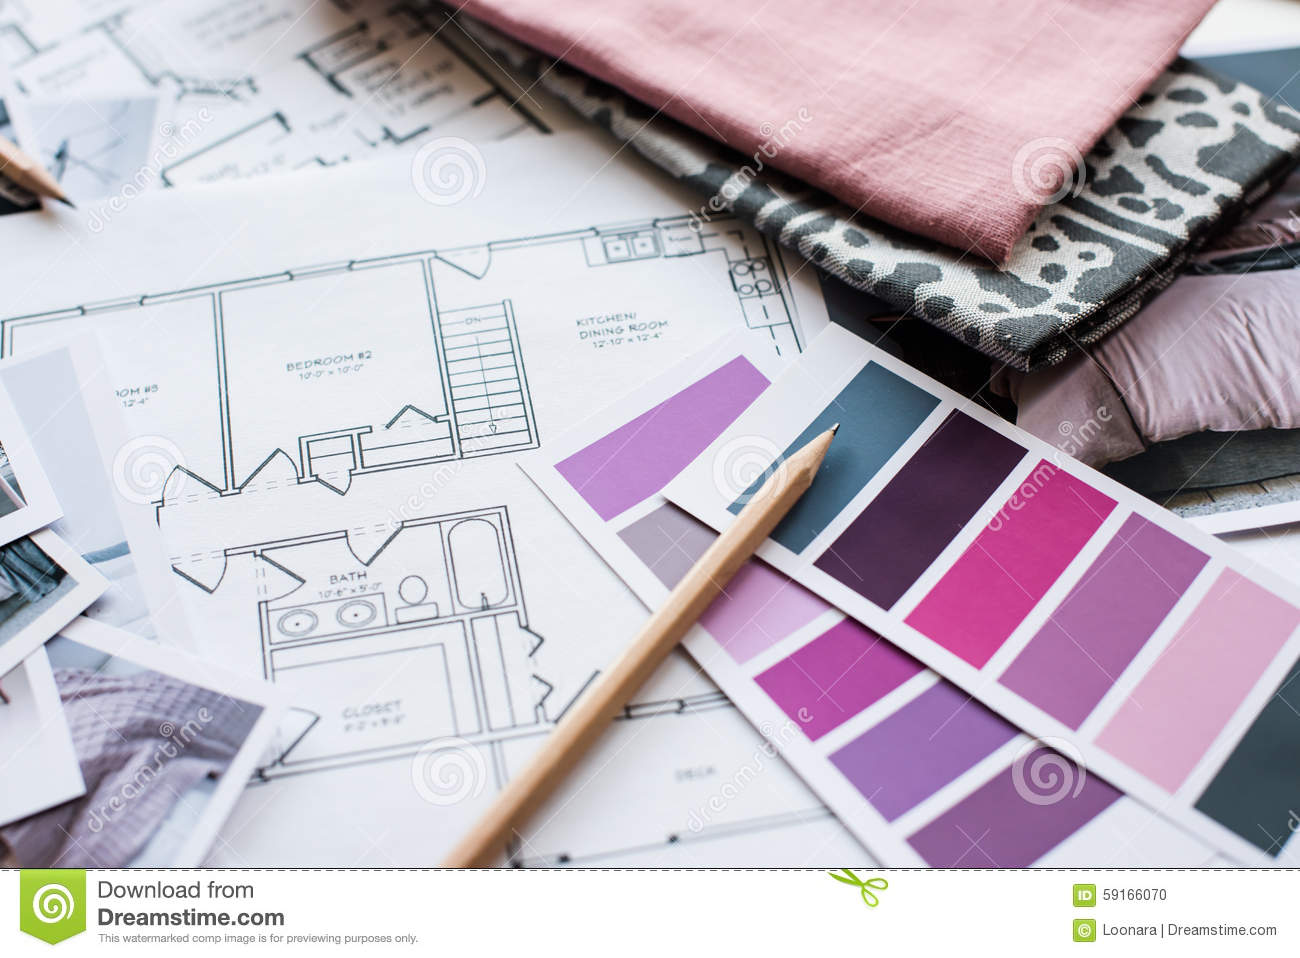 Architectural Color Decoration Designer Designers Fabric Furniture House Interior